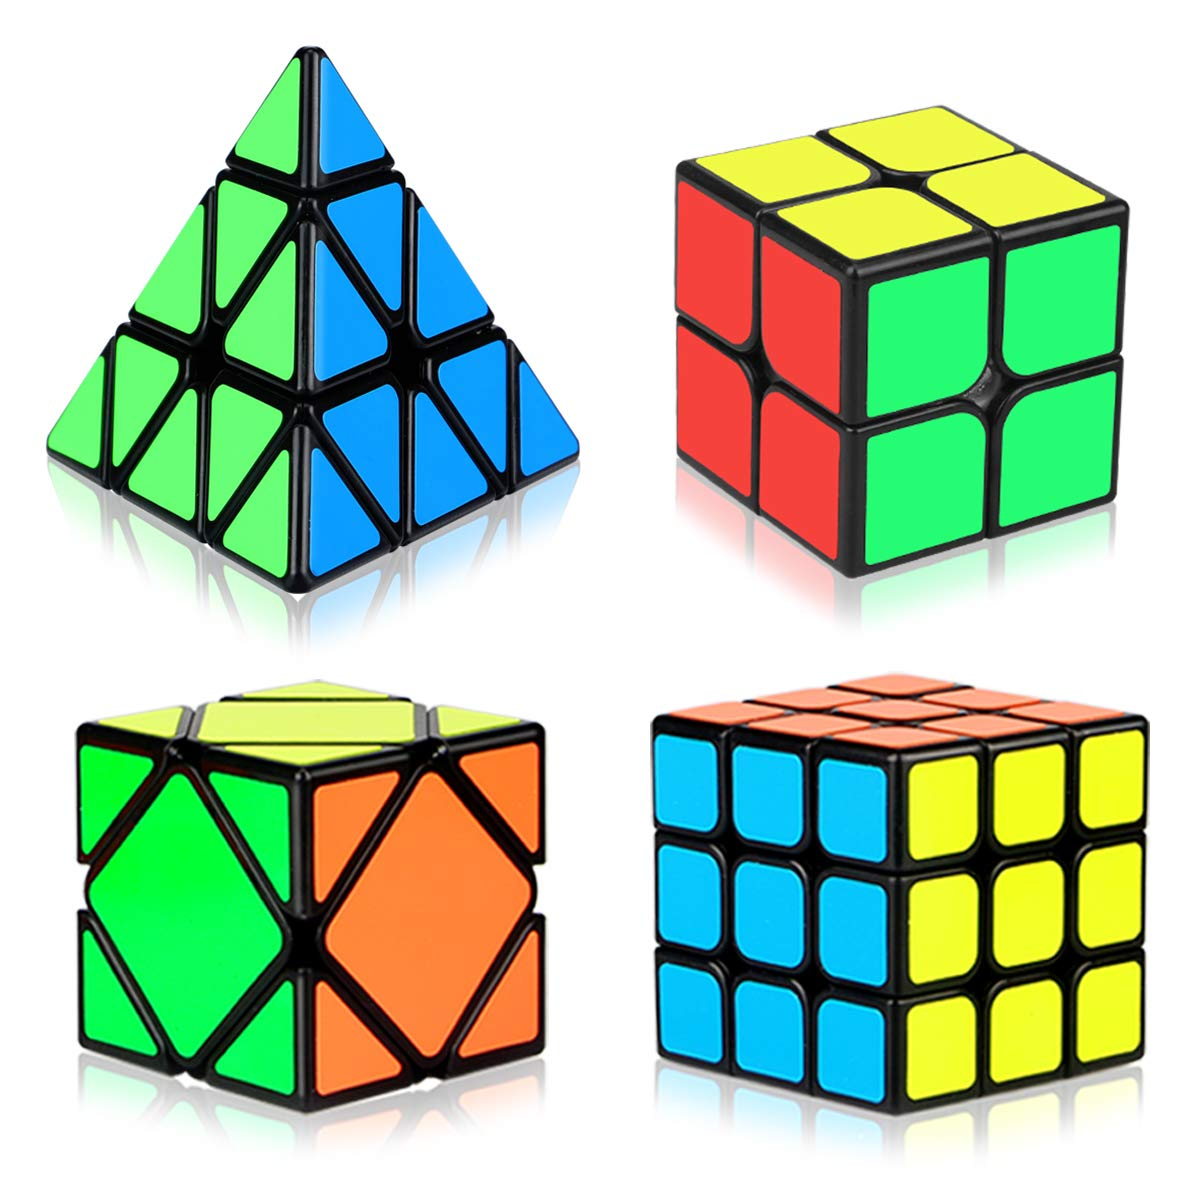 Speed Cube Set, Aitey Cube Bundle 2x2 3x3 Pyramid and Skew Speed Cube Magic Smooth Cube Puzzle Toy for Kids [4 Pack] by Aitey